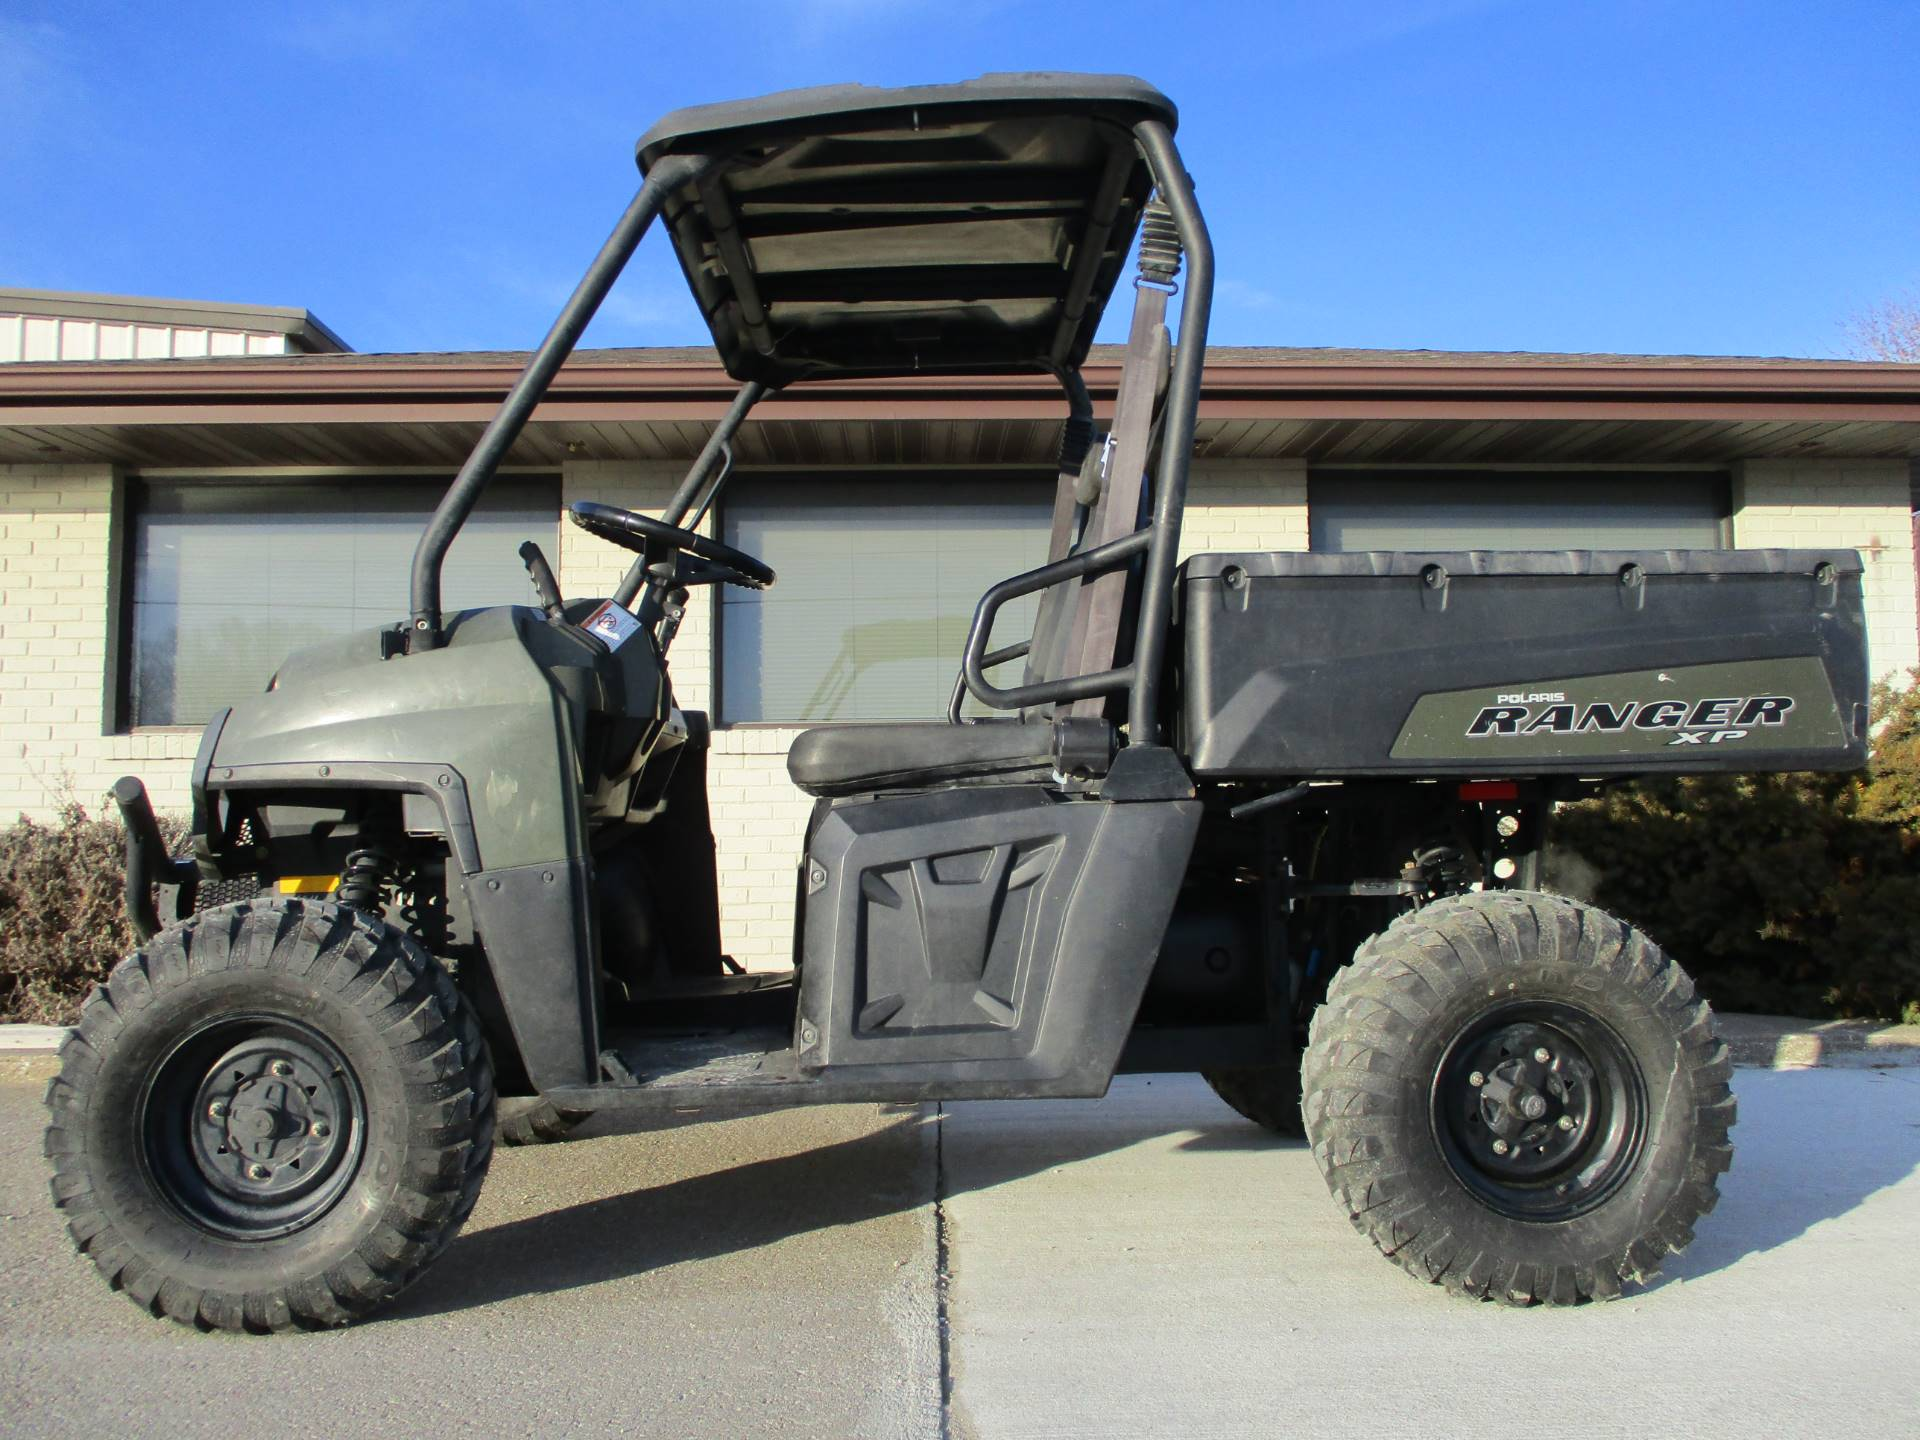 2011 Polaris Ranger XP® 800 in Winterset, Iowa - Photo 2